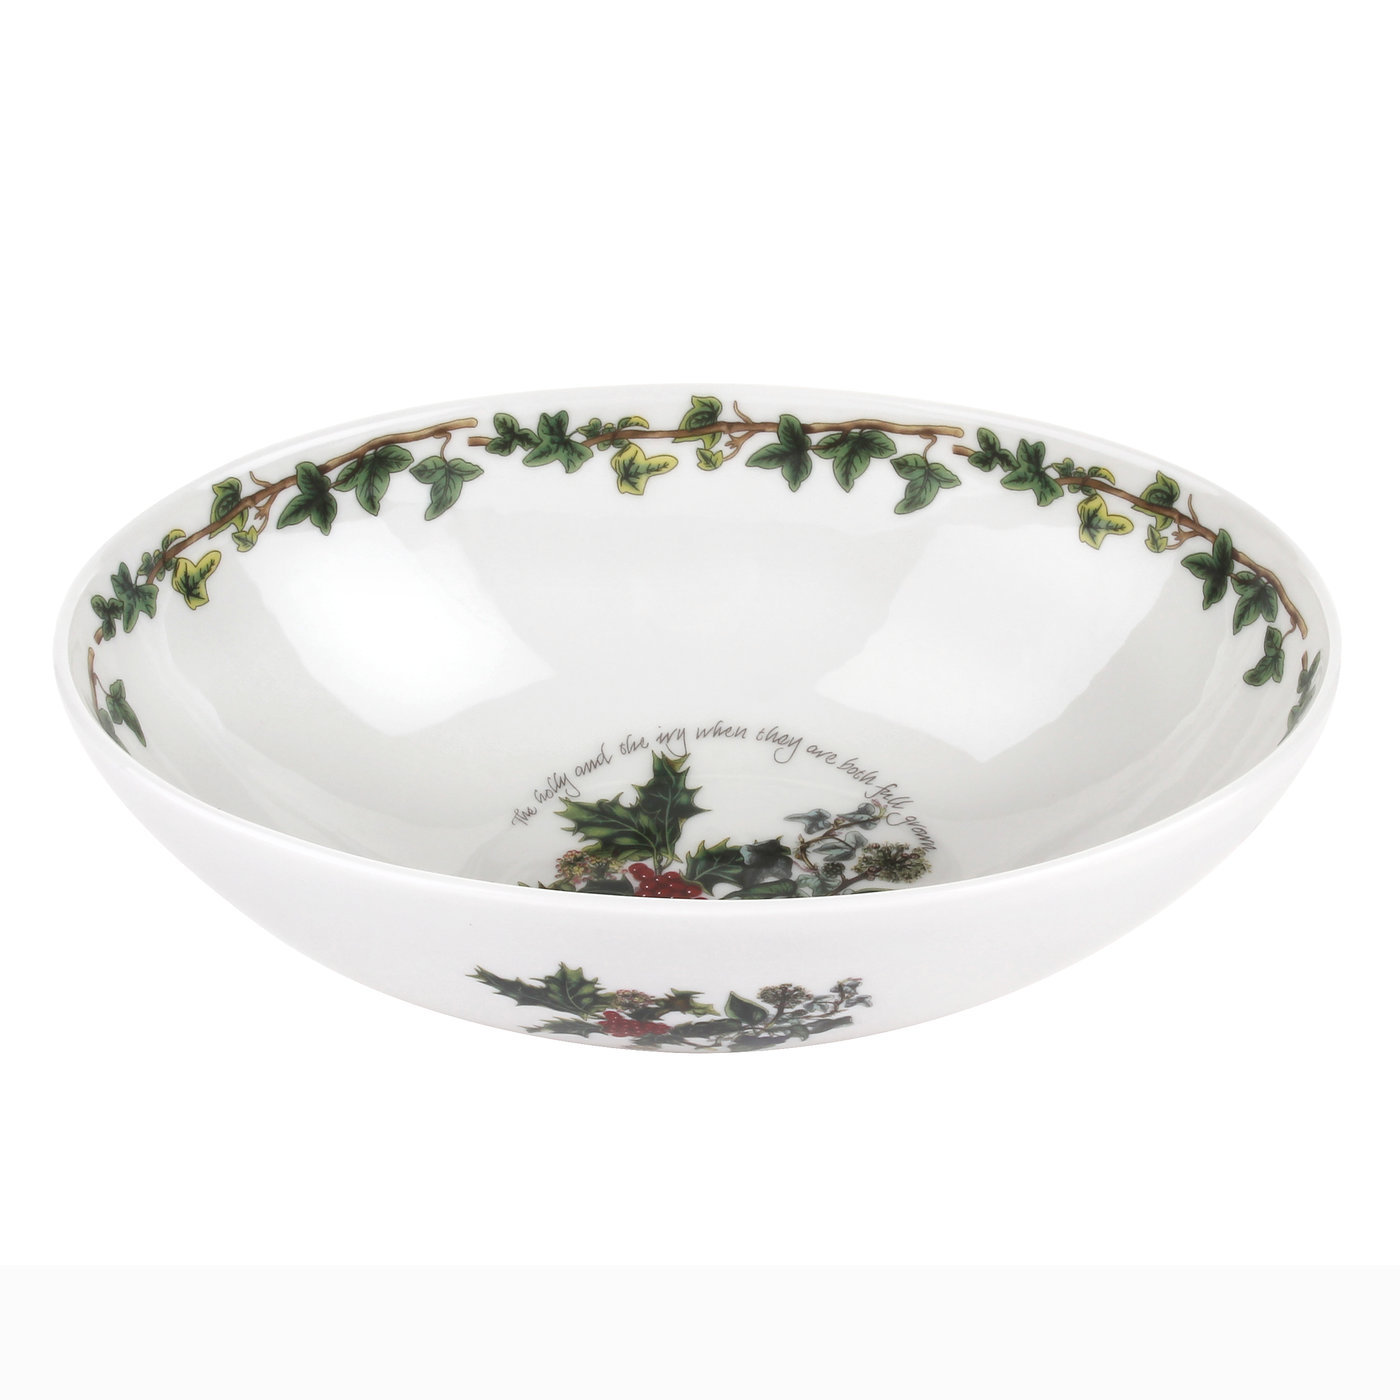 Portmeirion The Holly and The Ivy 9 Inch Oval Bowl image number 0